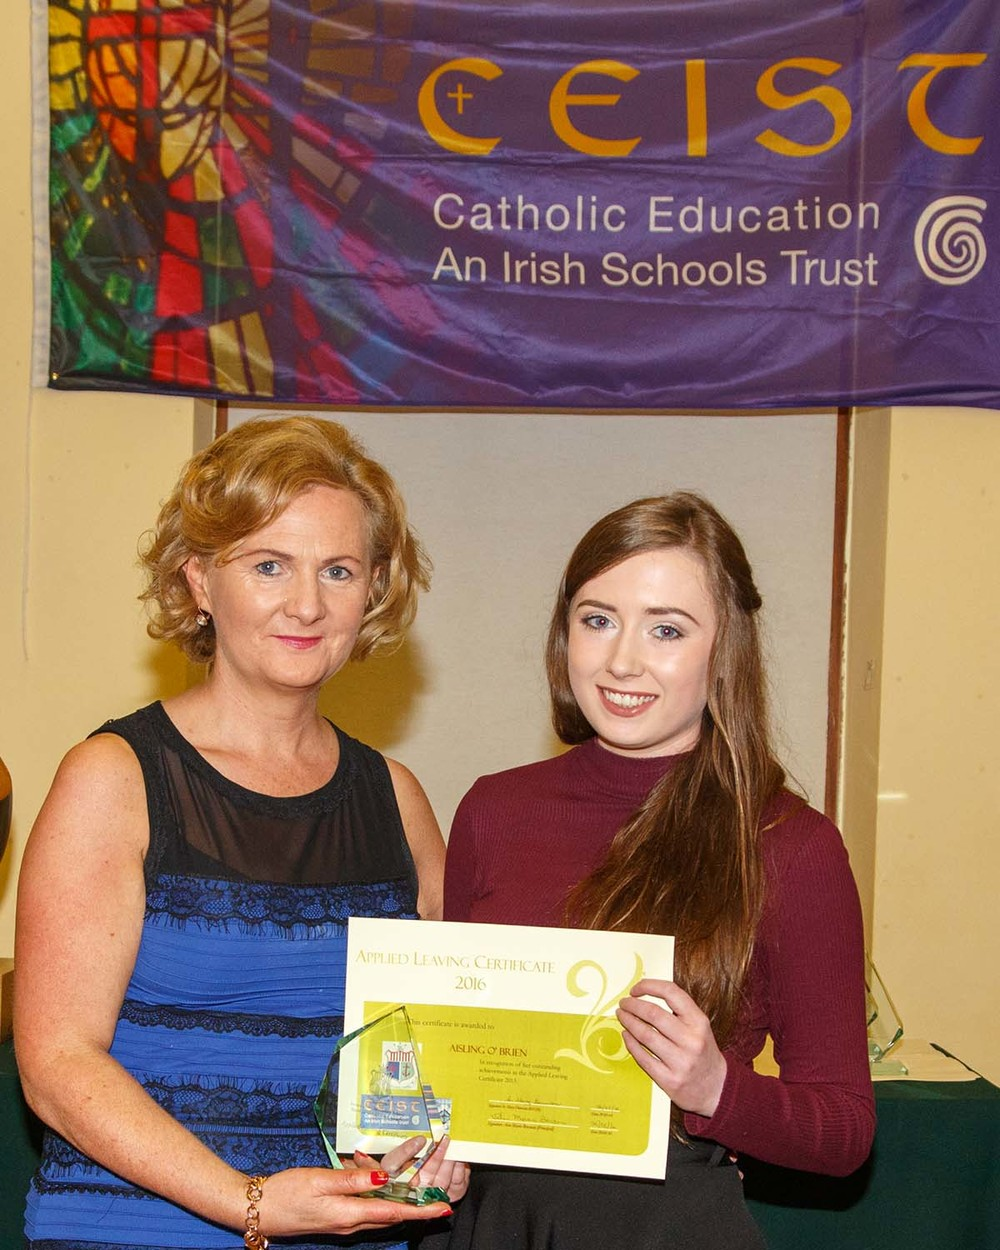 Aisling O'Brien  Joint winner of the  Applied Leaving Certificate Award